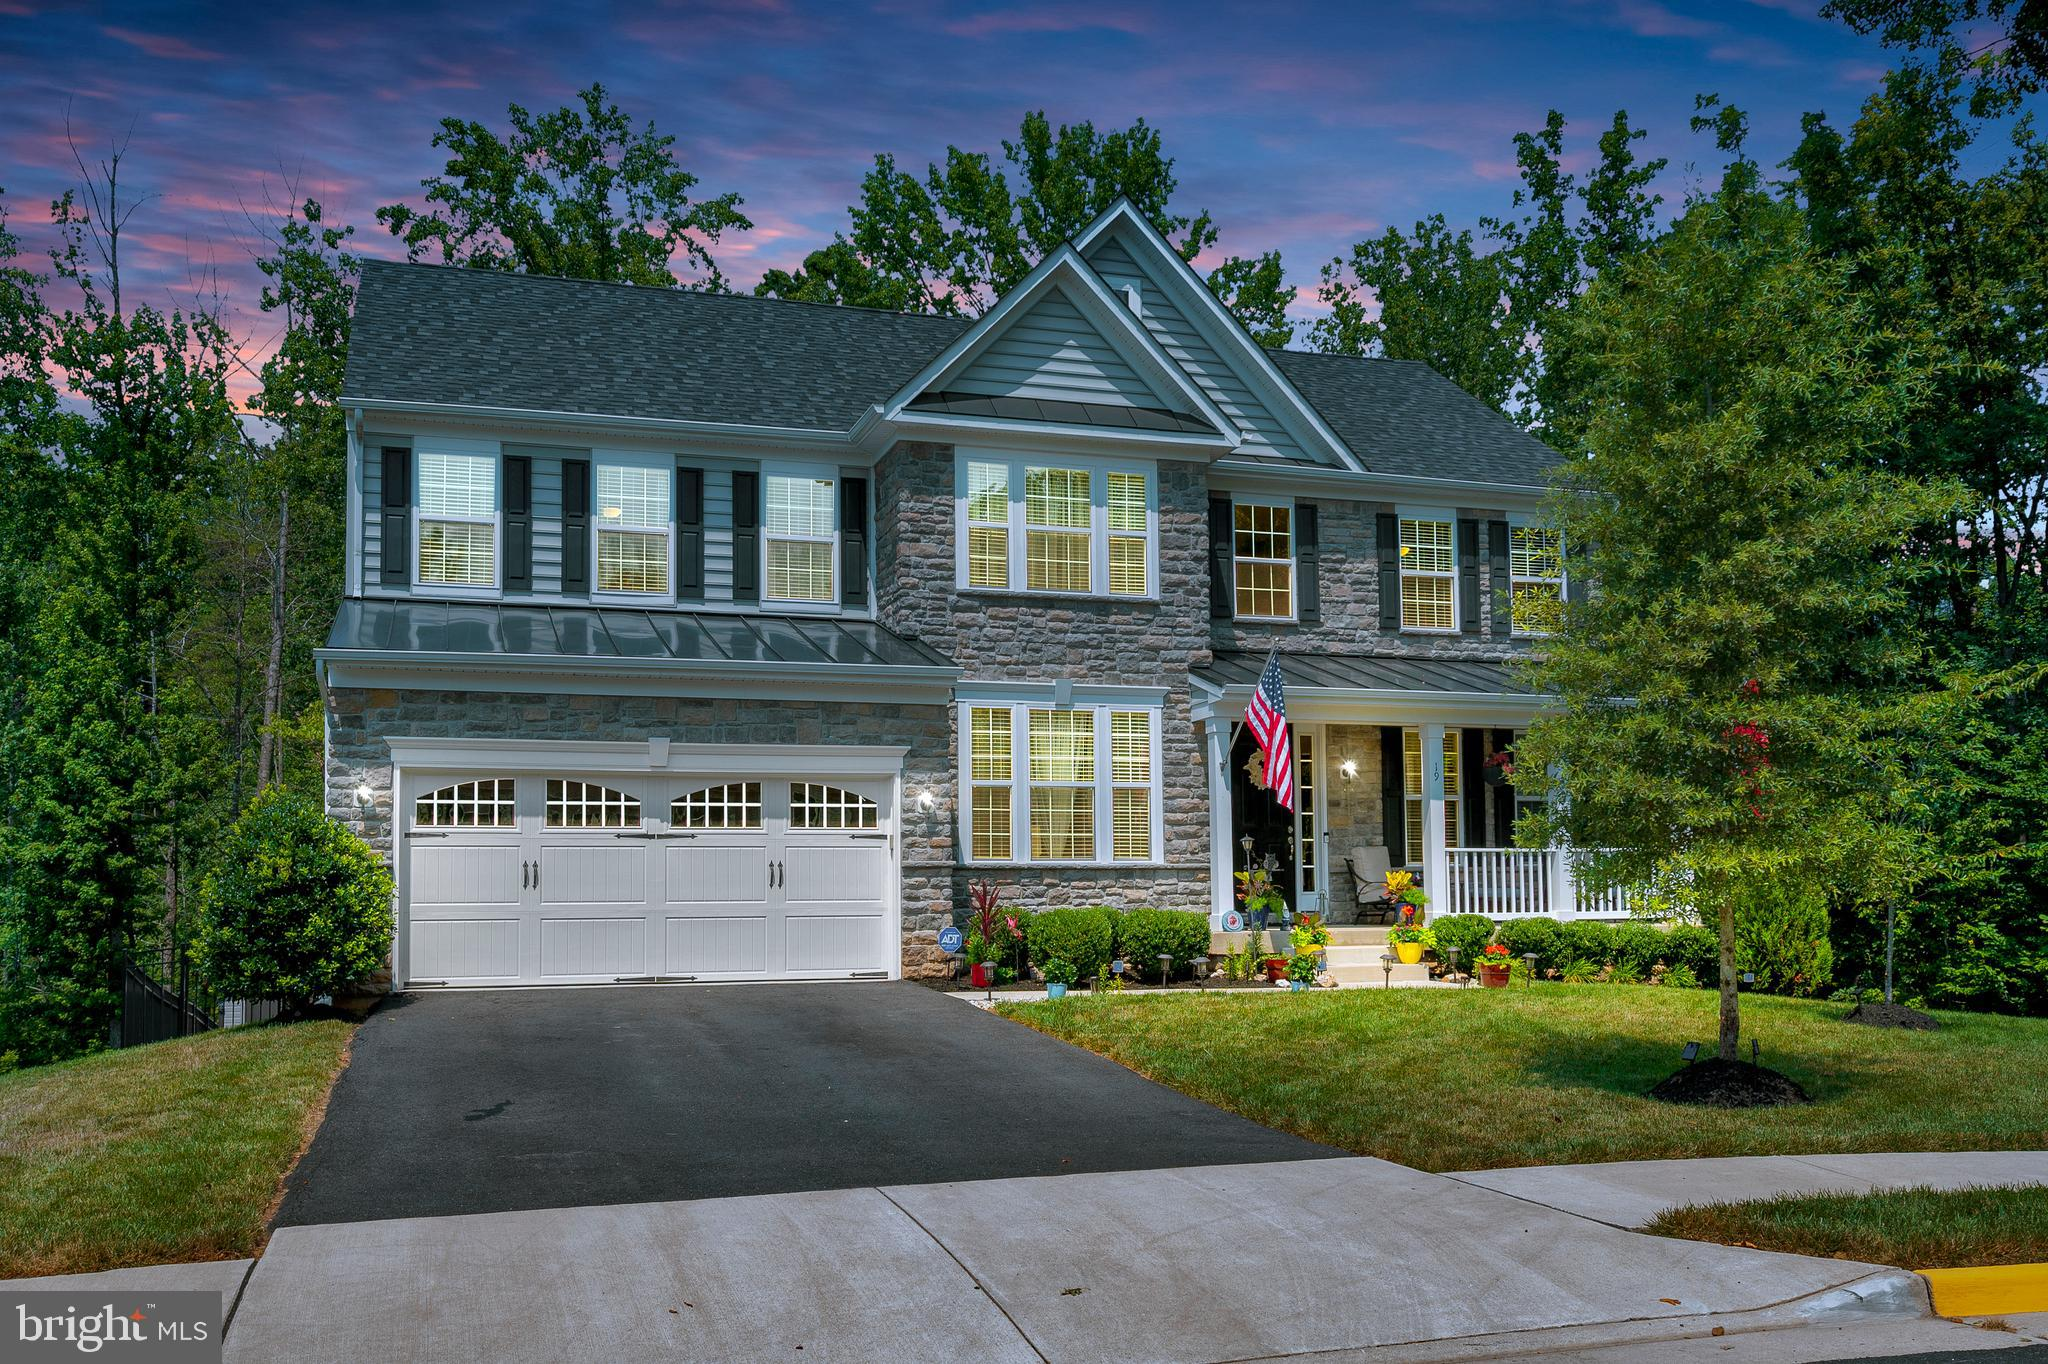 Immaculate home located at the end of a cul de sac. This open floor plan colonial has all the space you need. Main floor has two story foyer, office, dual staircase, formal living and  dining room. Gourmet kitchen with large island, double oven, granite counters, stain steel appliances and an abundance of cabinets. Bright morning room off the kitchen with tons of natural light. Master bedroom retreat with sitting area, large walk in closet. Master bath has his and her sinks. Upgraded tile, soaking tub and shower with seat. Finished basement with large rec room,  bedroom and full bath. Space for another legal bedroom and lots of storage.Maintenance free deck to leads to patio for entertaining with a fire pit. Lot backs to trees and located on a private cul de sac.